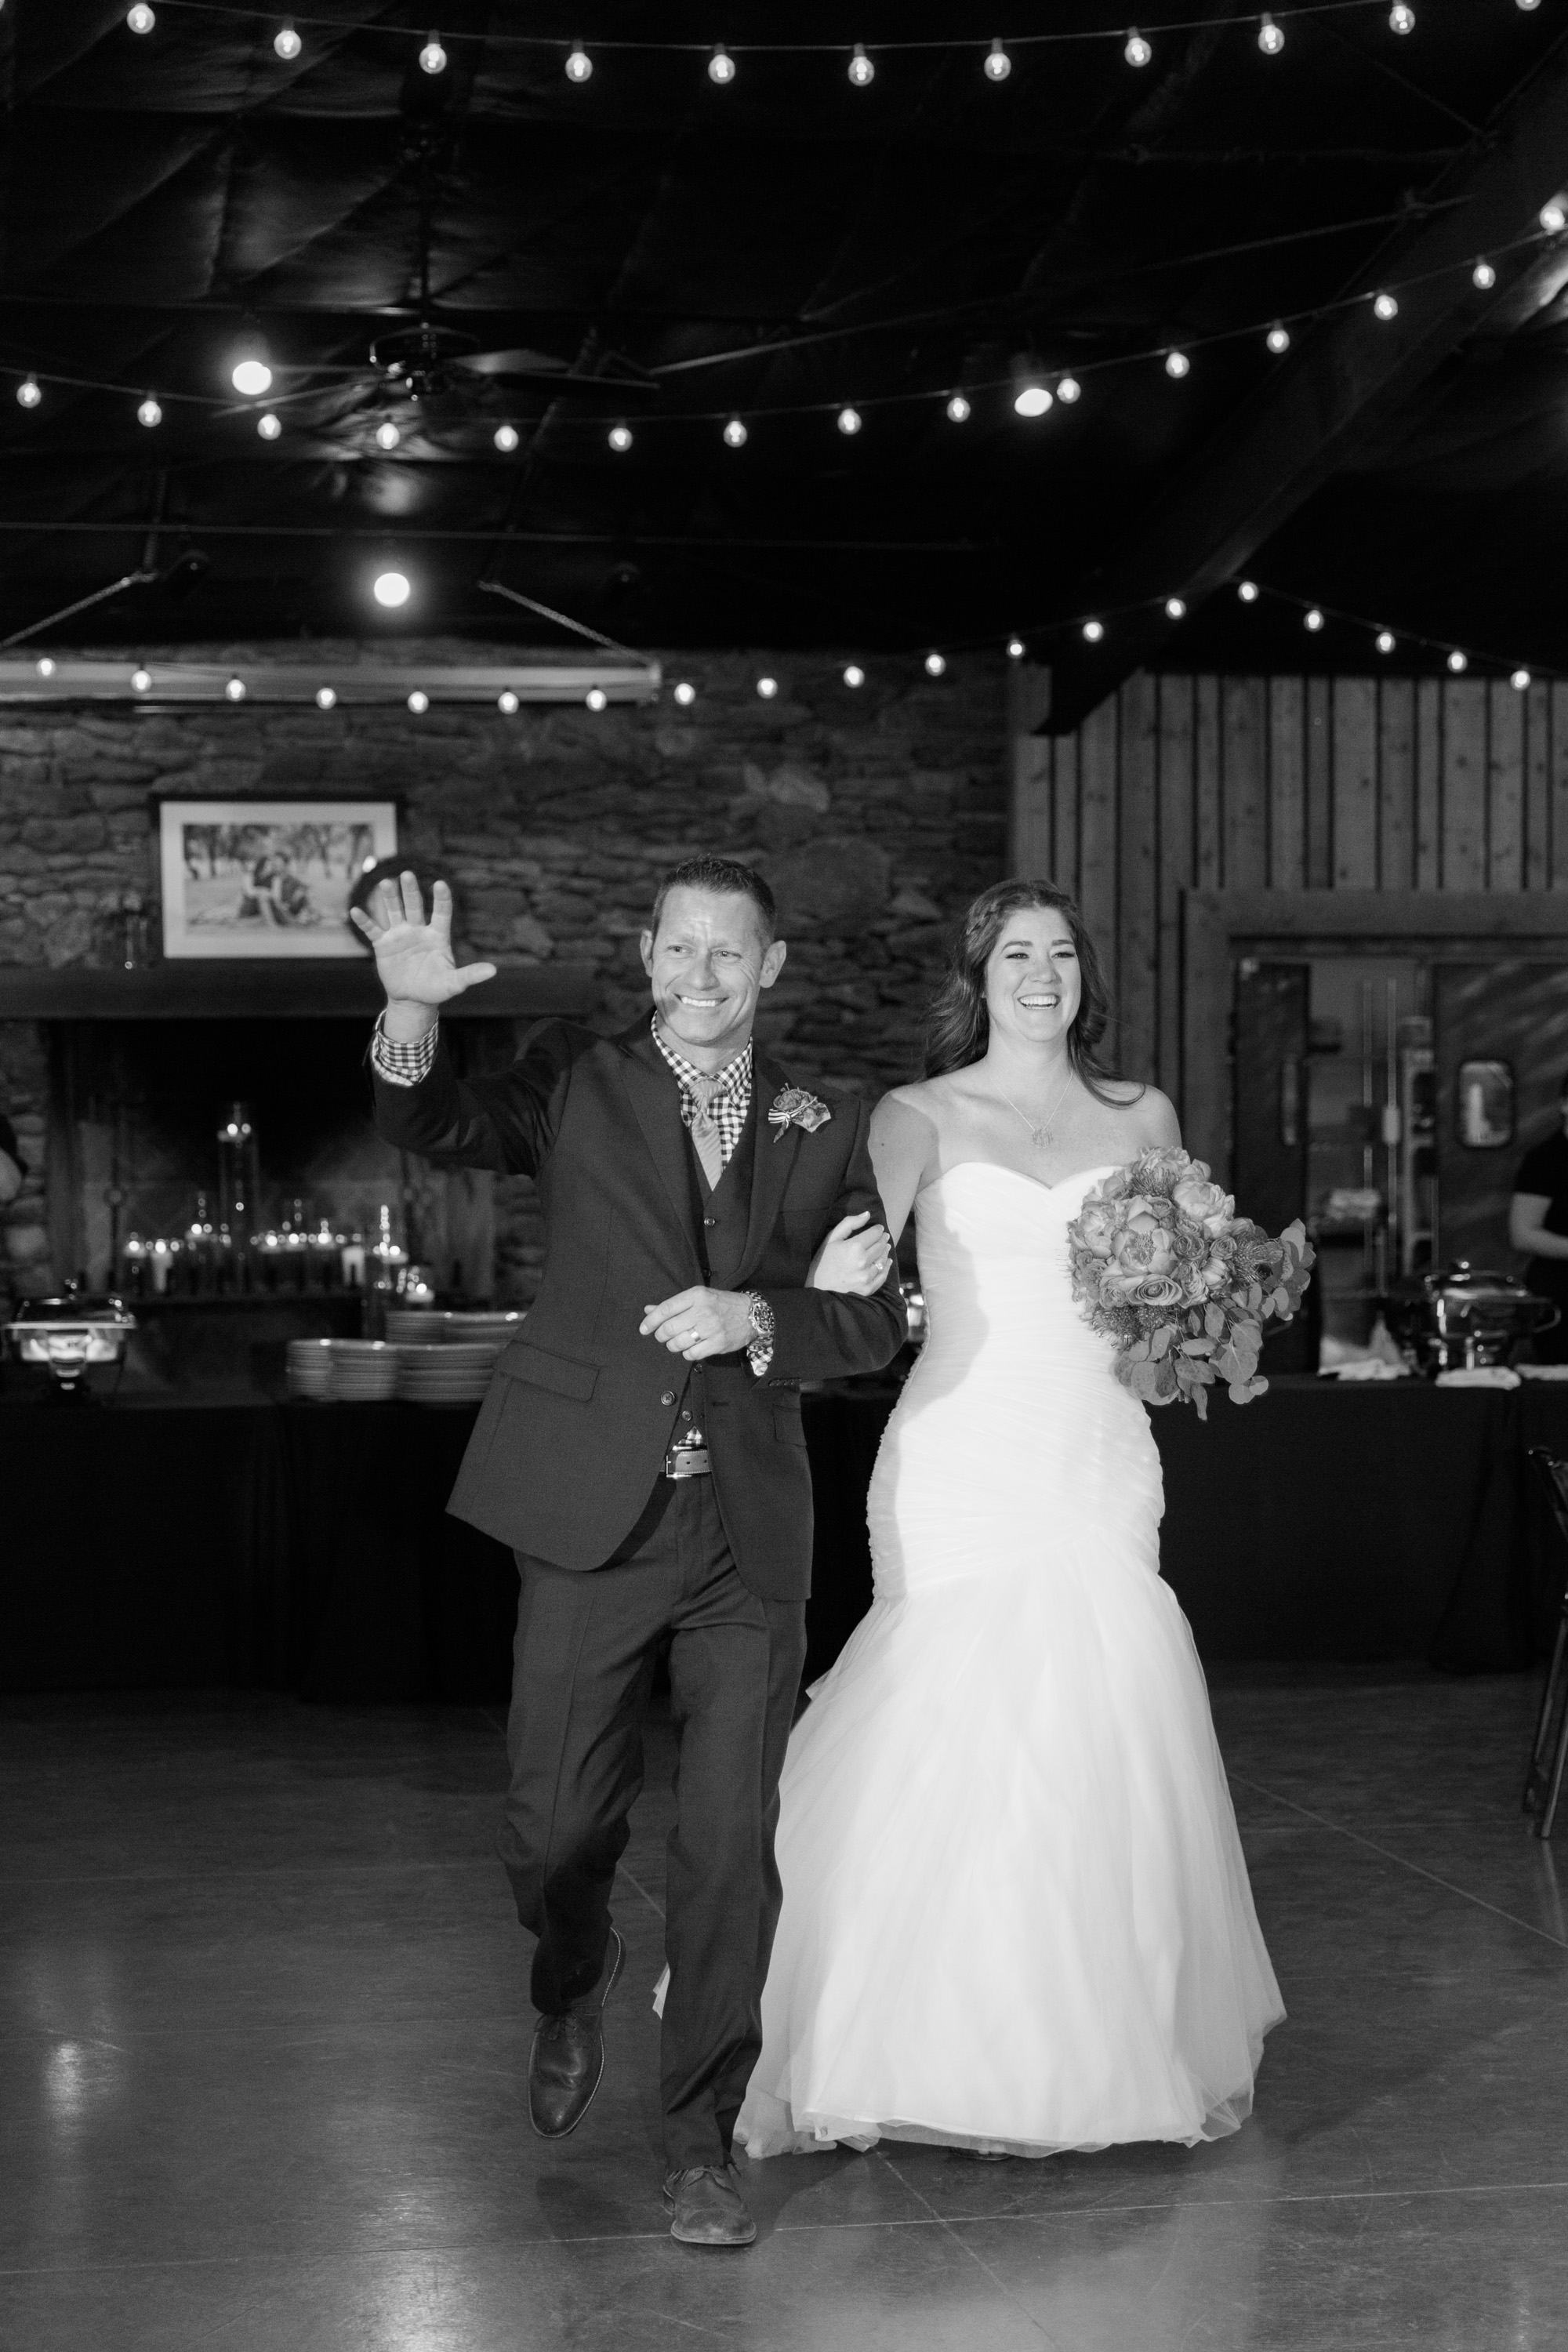 Bride and groom's grand entrance into the reception.